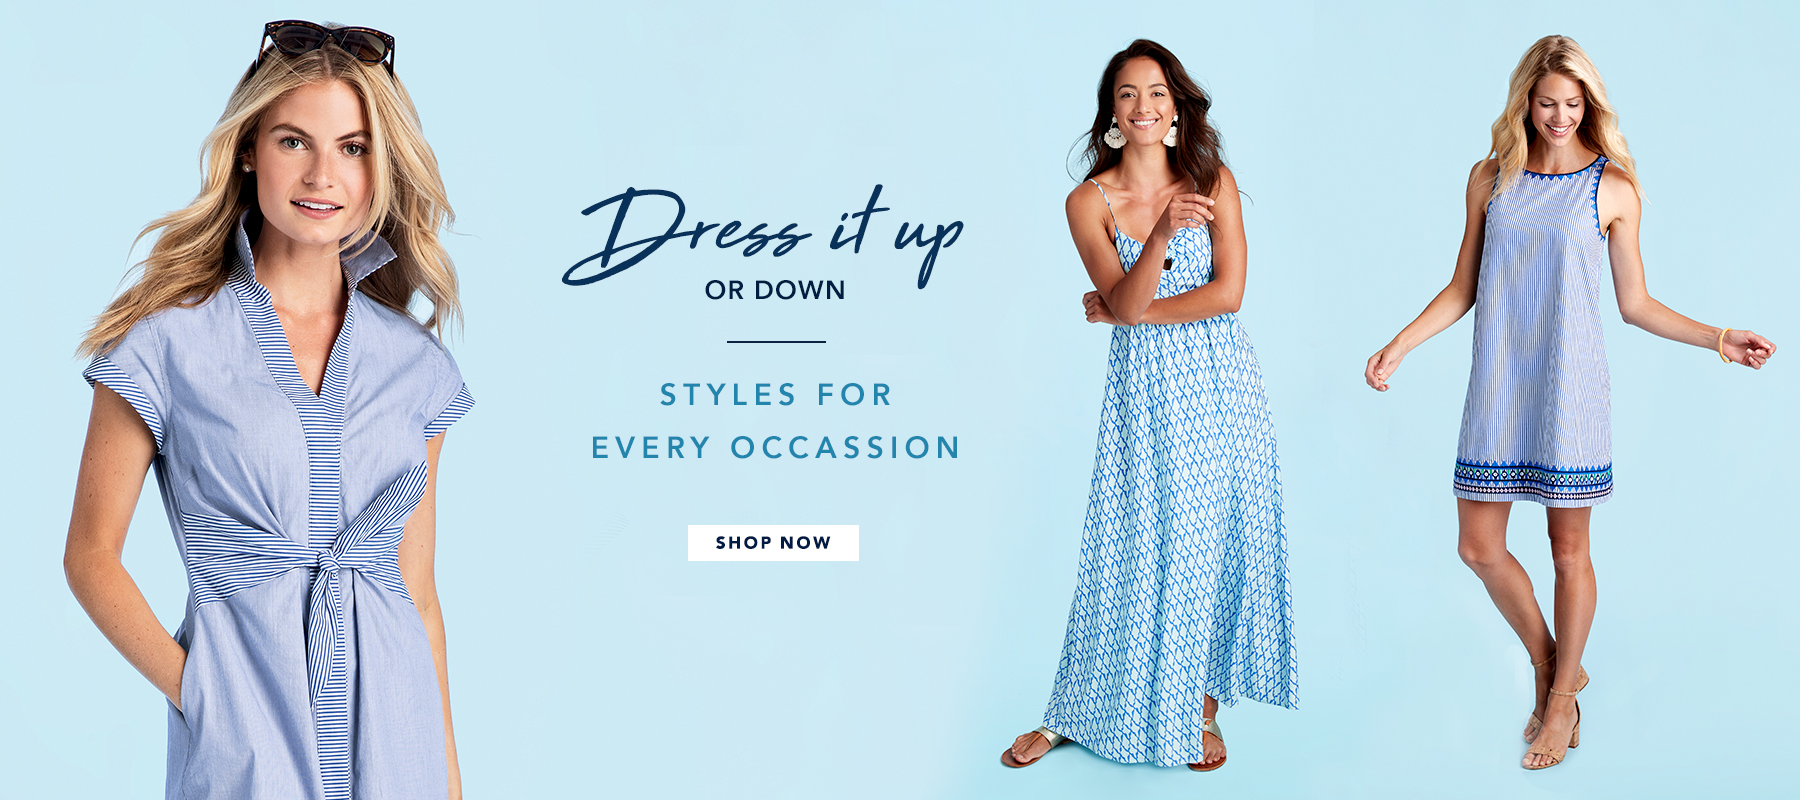 Dress it Up or Down. Styles for Every Occassion. Shop Now.